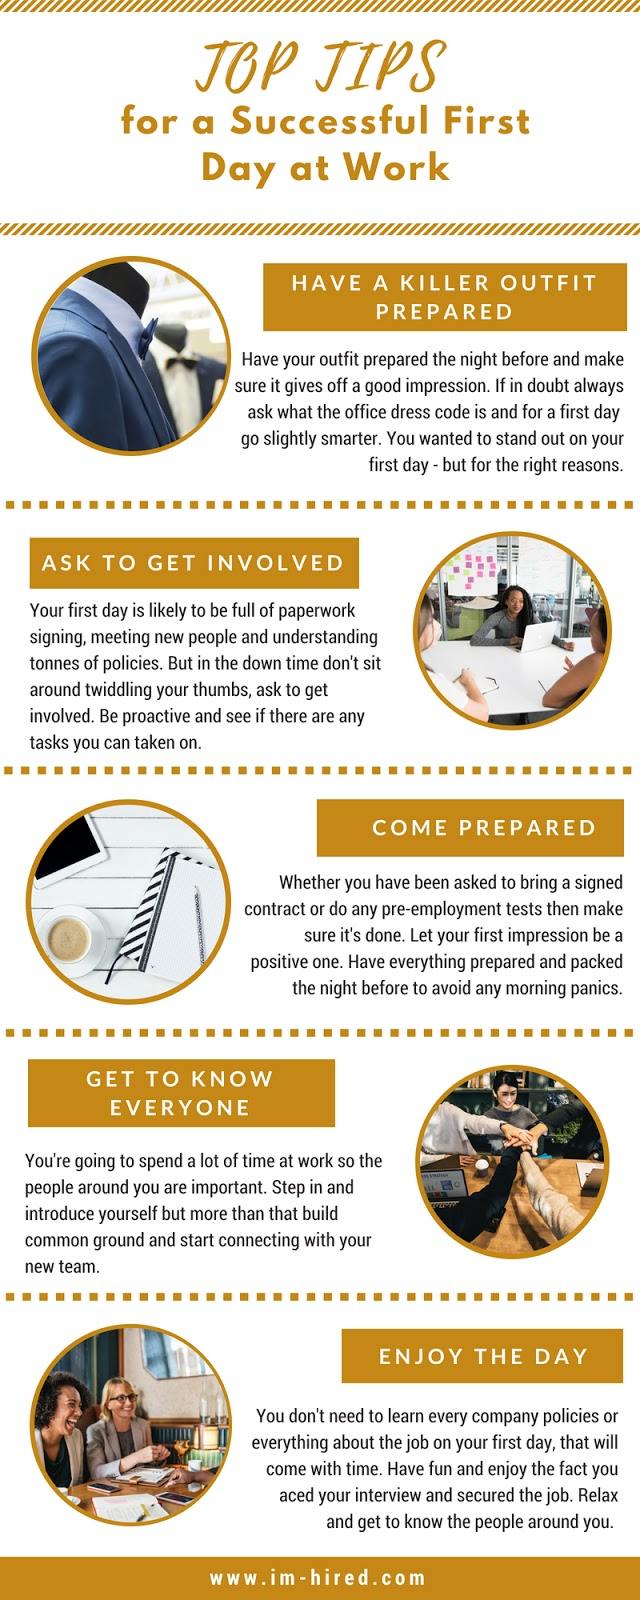 Stand Out on Your First Day of Work for all the Right Reasons, Infographic